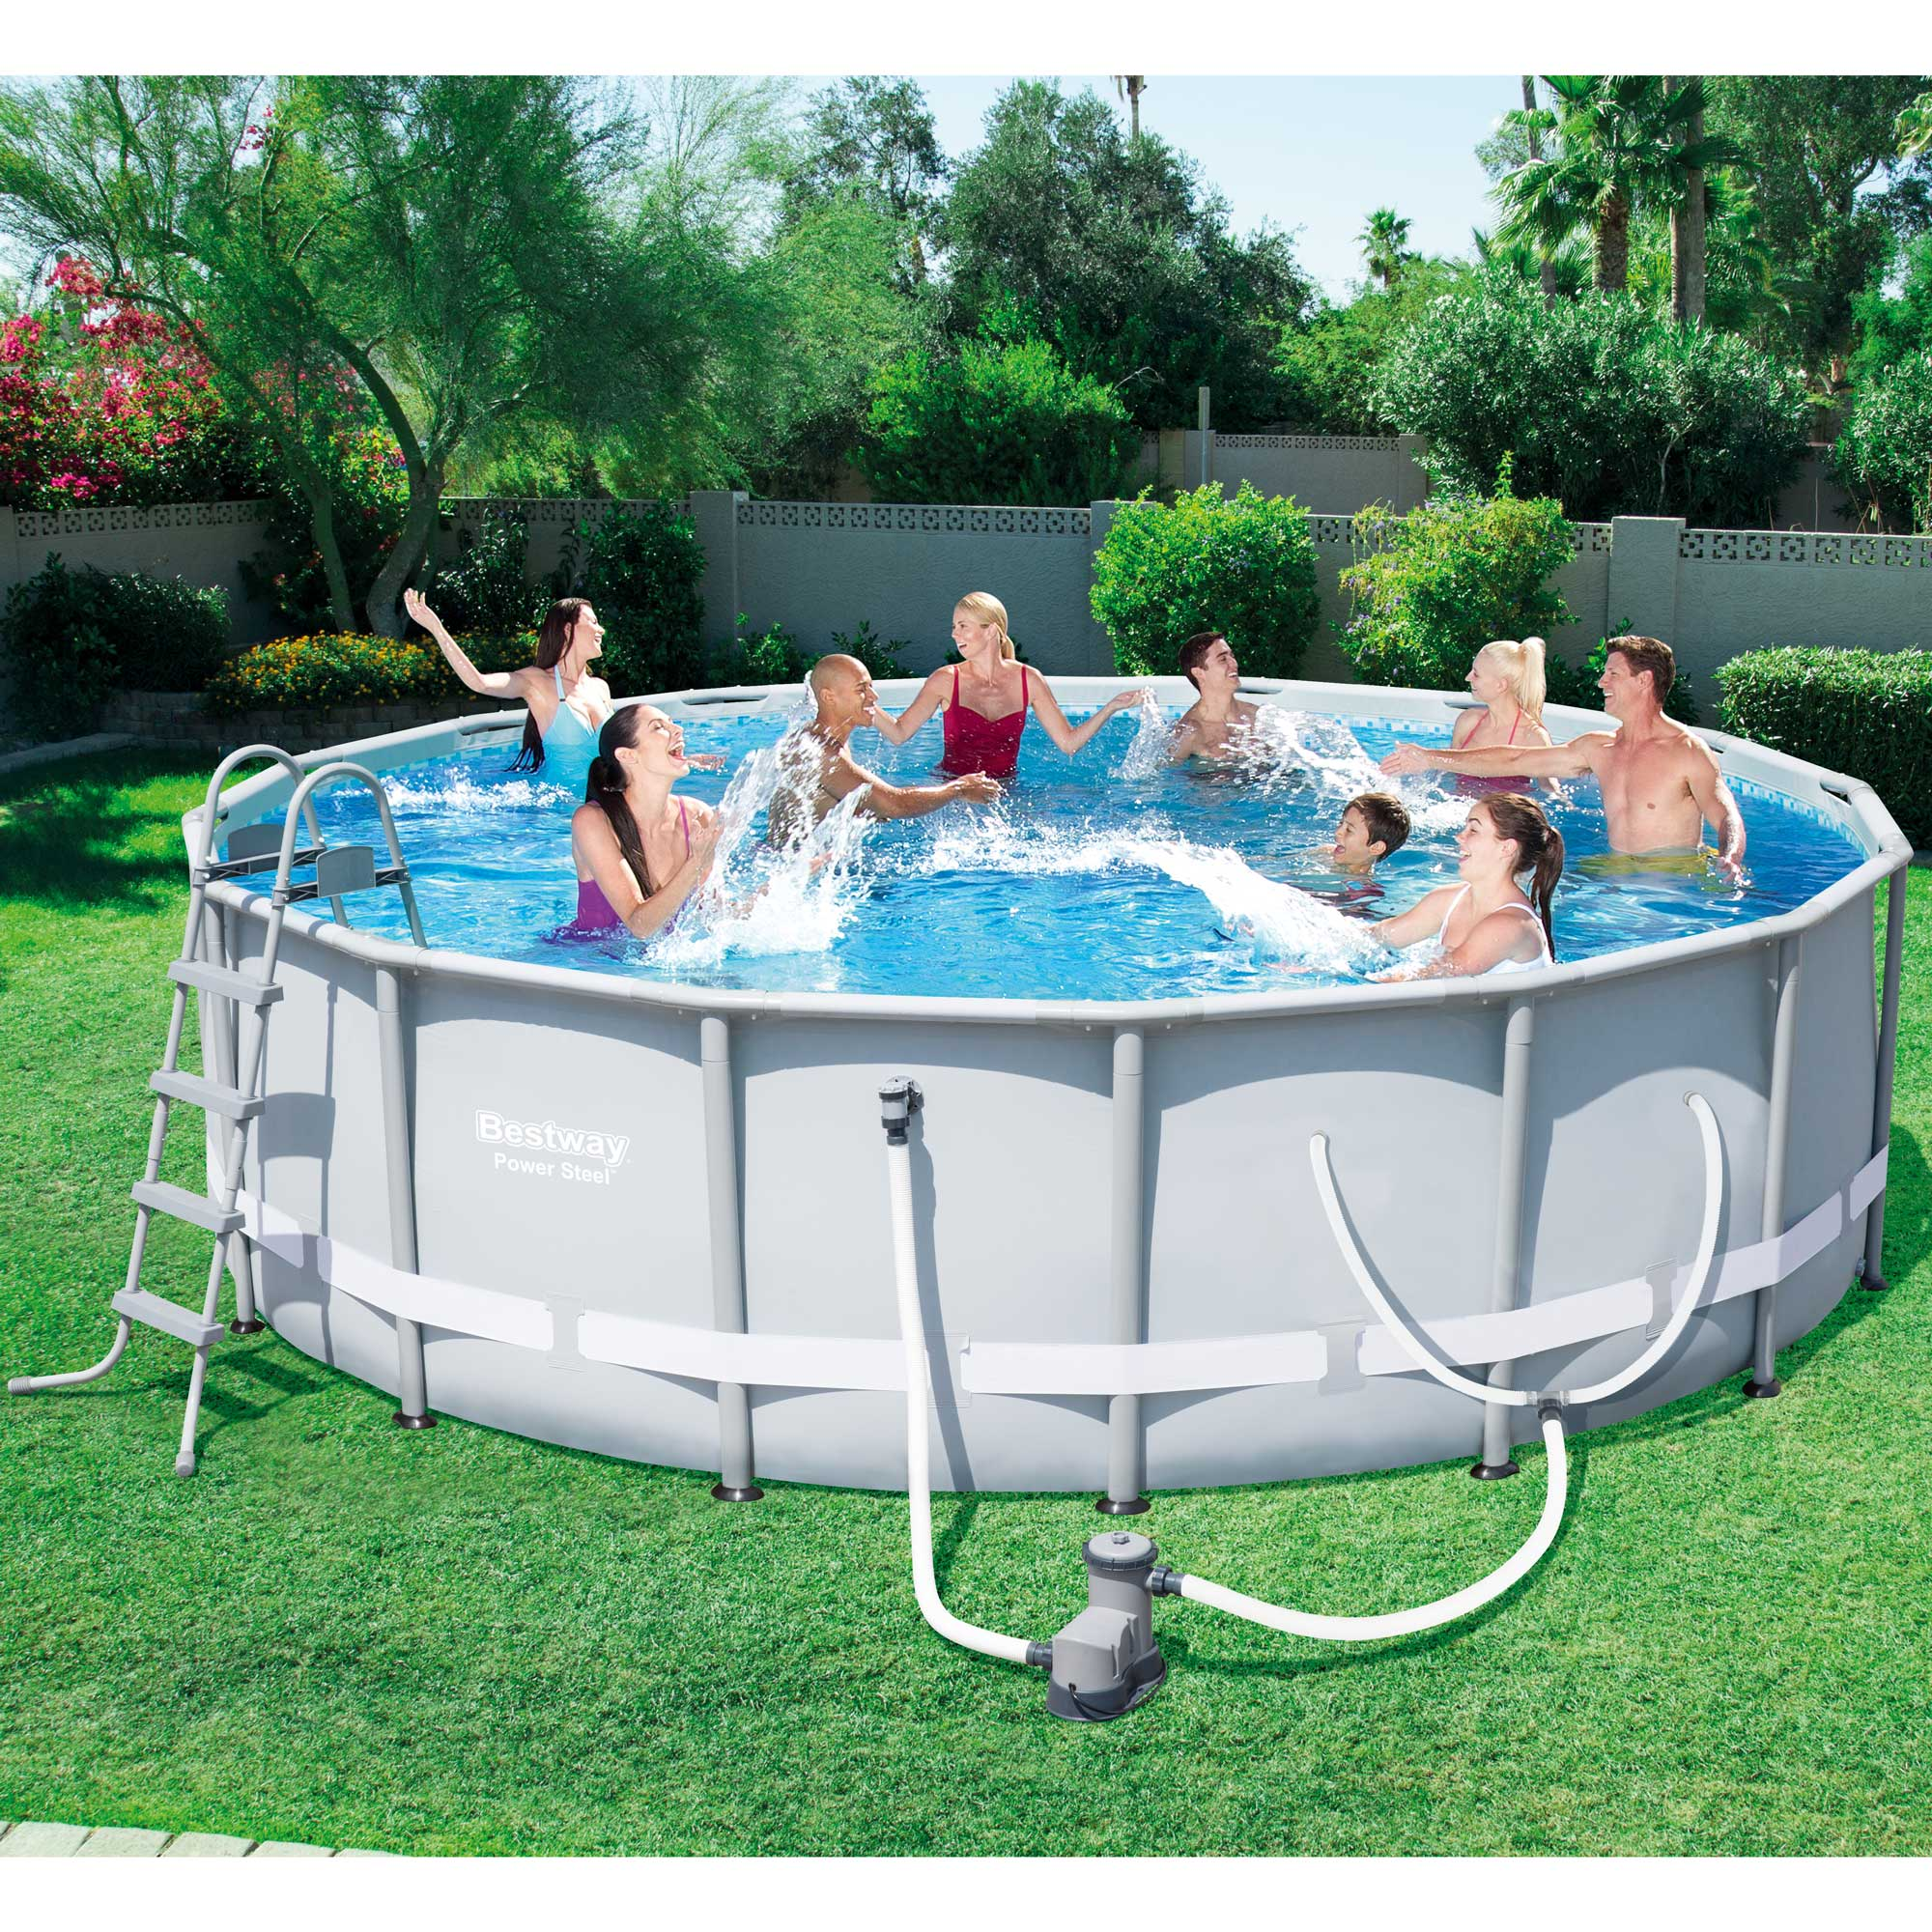 Bestway 16 39 x 48 power steel frame above ground pool set with filter 56491e - Steel frame pool ...